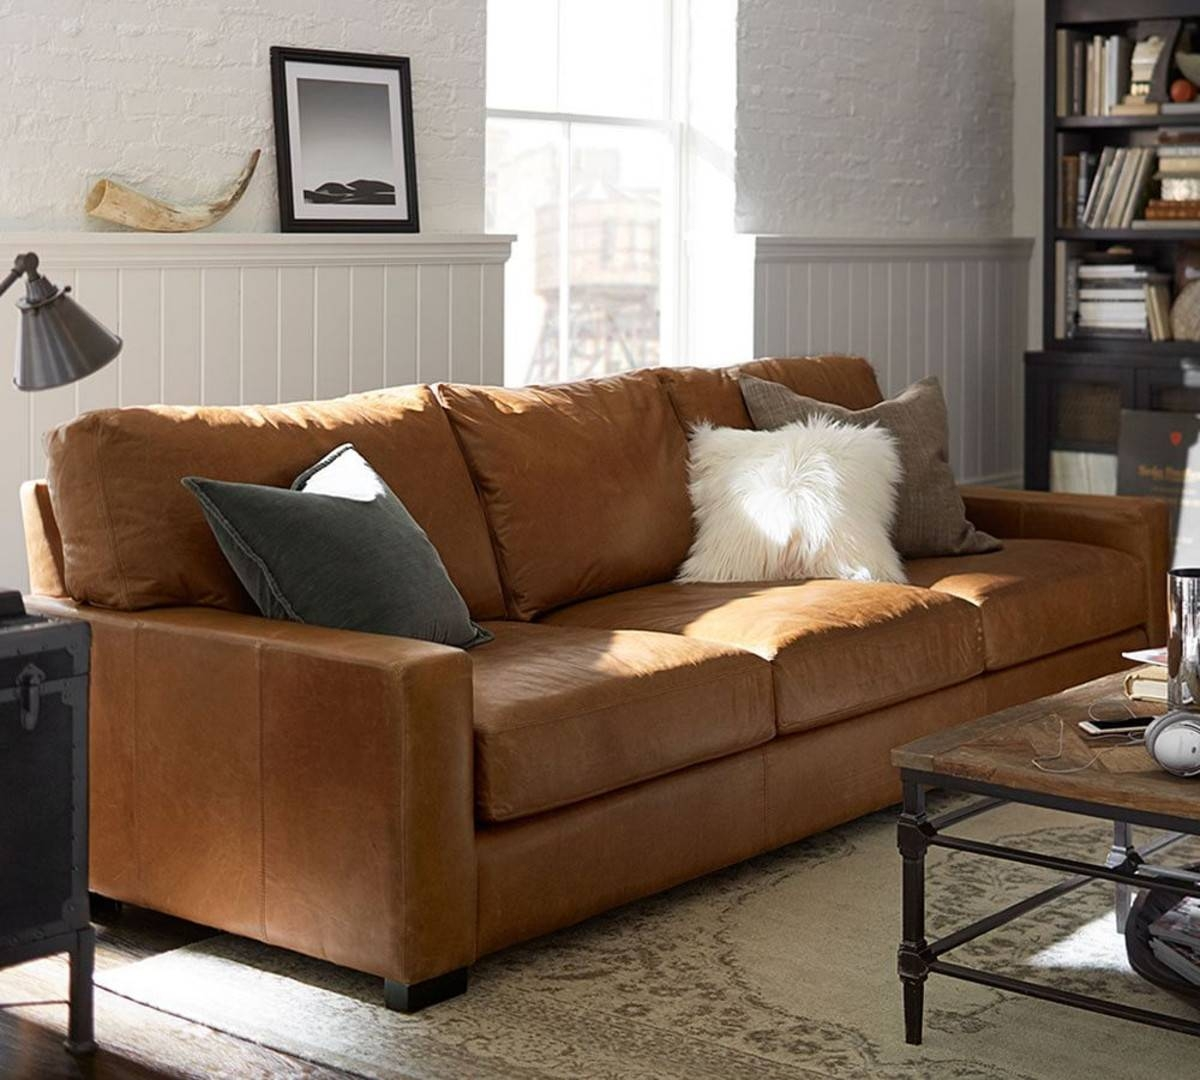 Unique Caramel Leather Sofa 28 On Sofa Room Ideas With Caramel regarding Carmel Leather Sofas (Image 14 of 15)